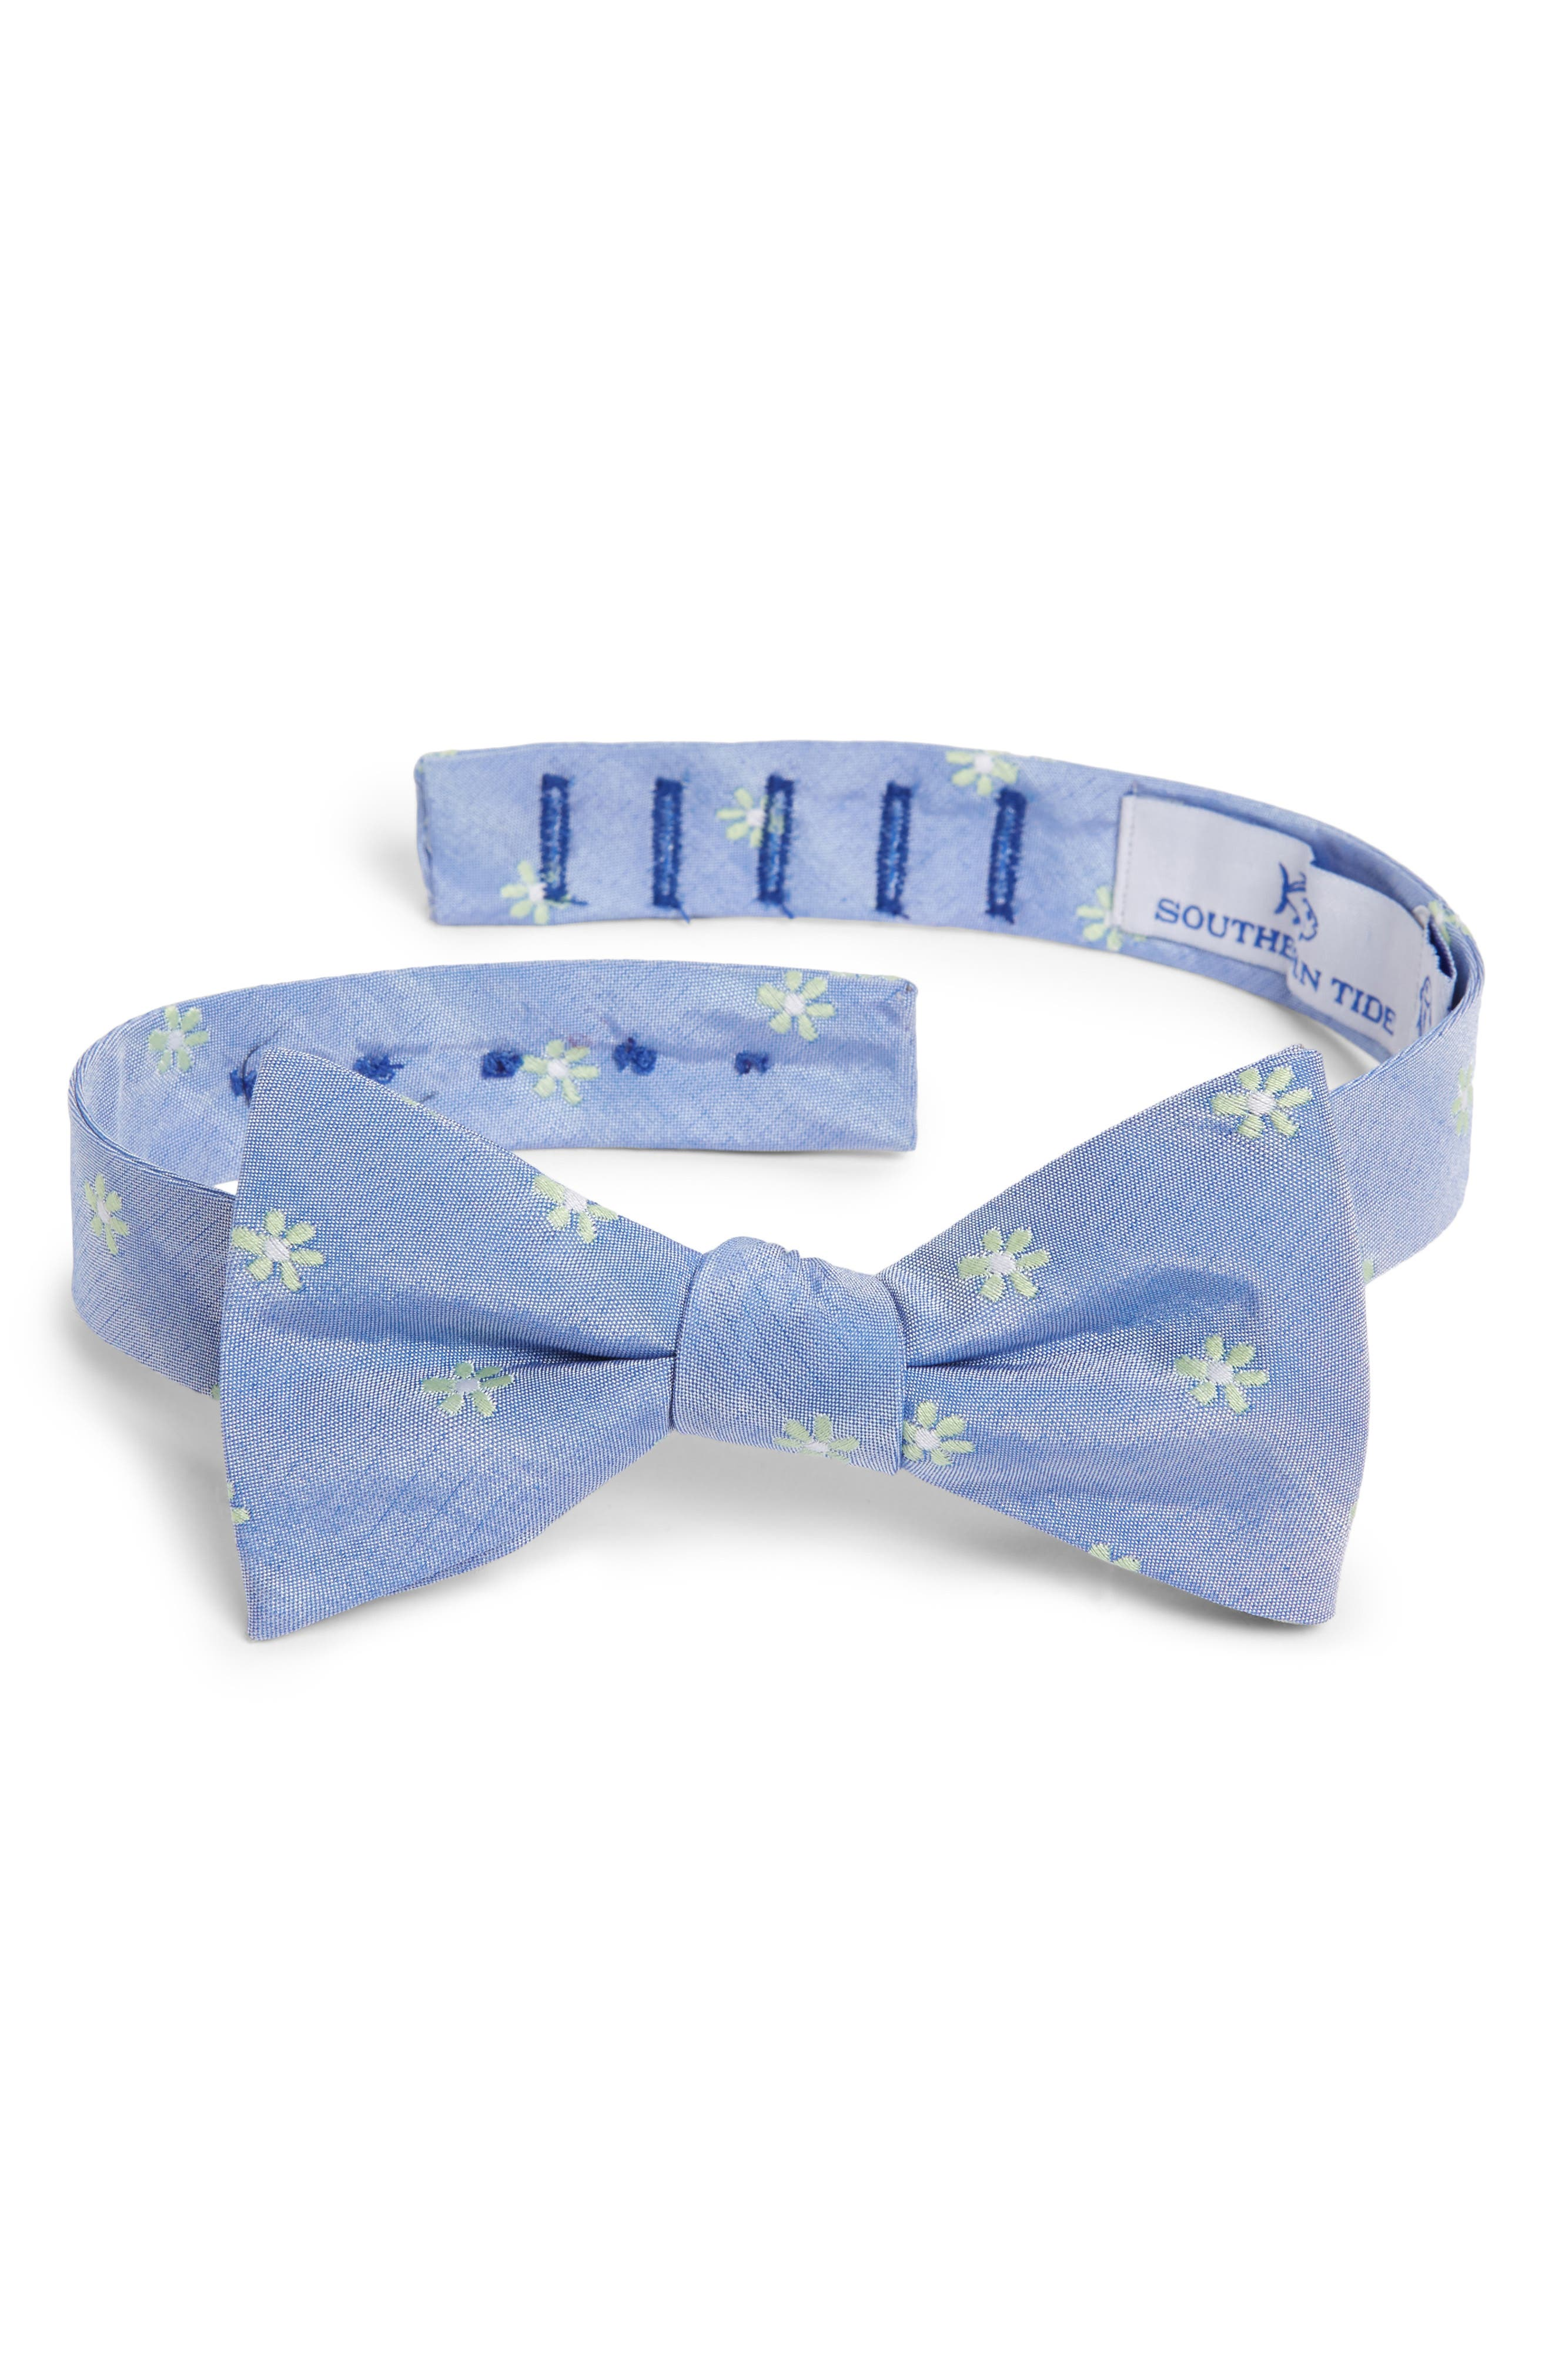 Cumberland Floral Cotton & Silk Bow Tie,                             Main thumbnail 1, color,                             Green/ Blue